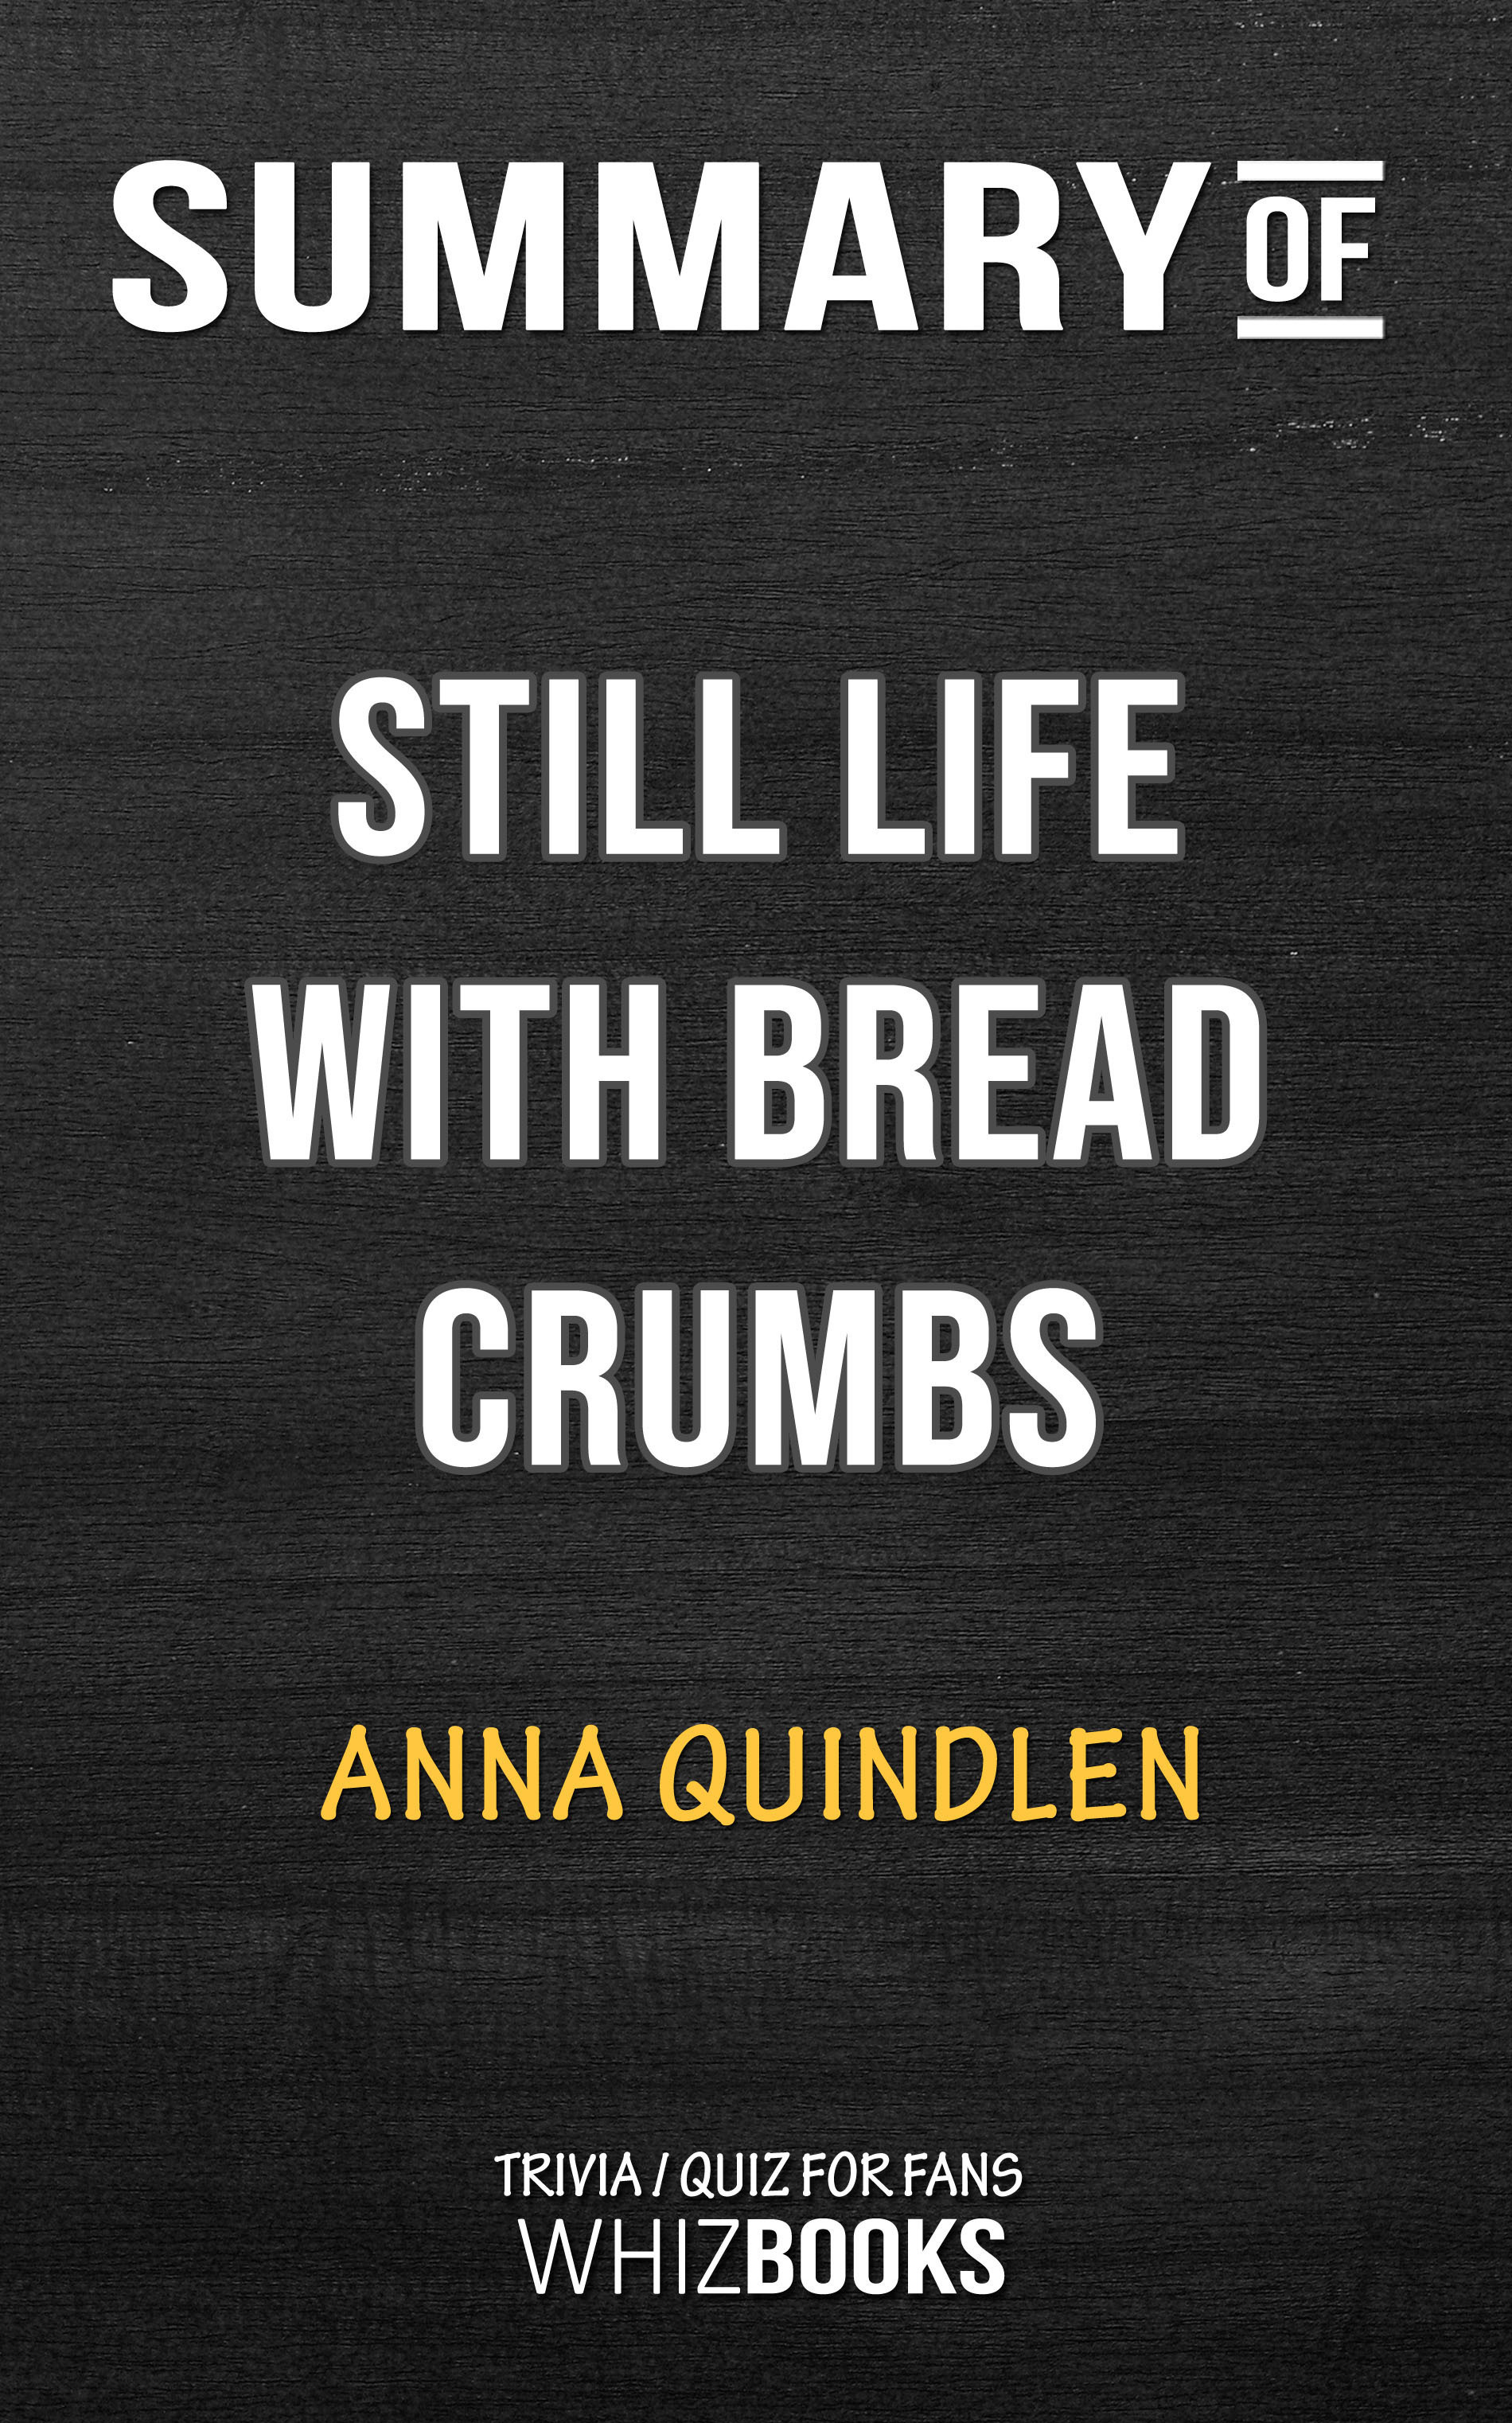 Summary of Still Life with Bread Crumbs: A Novel by Anna Quindlen | Conversation Starters